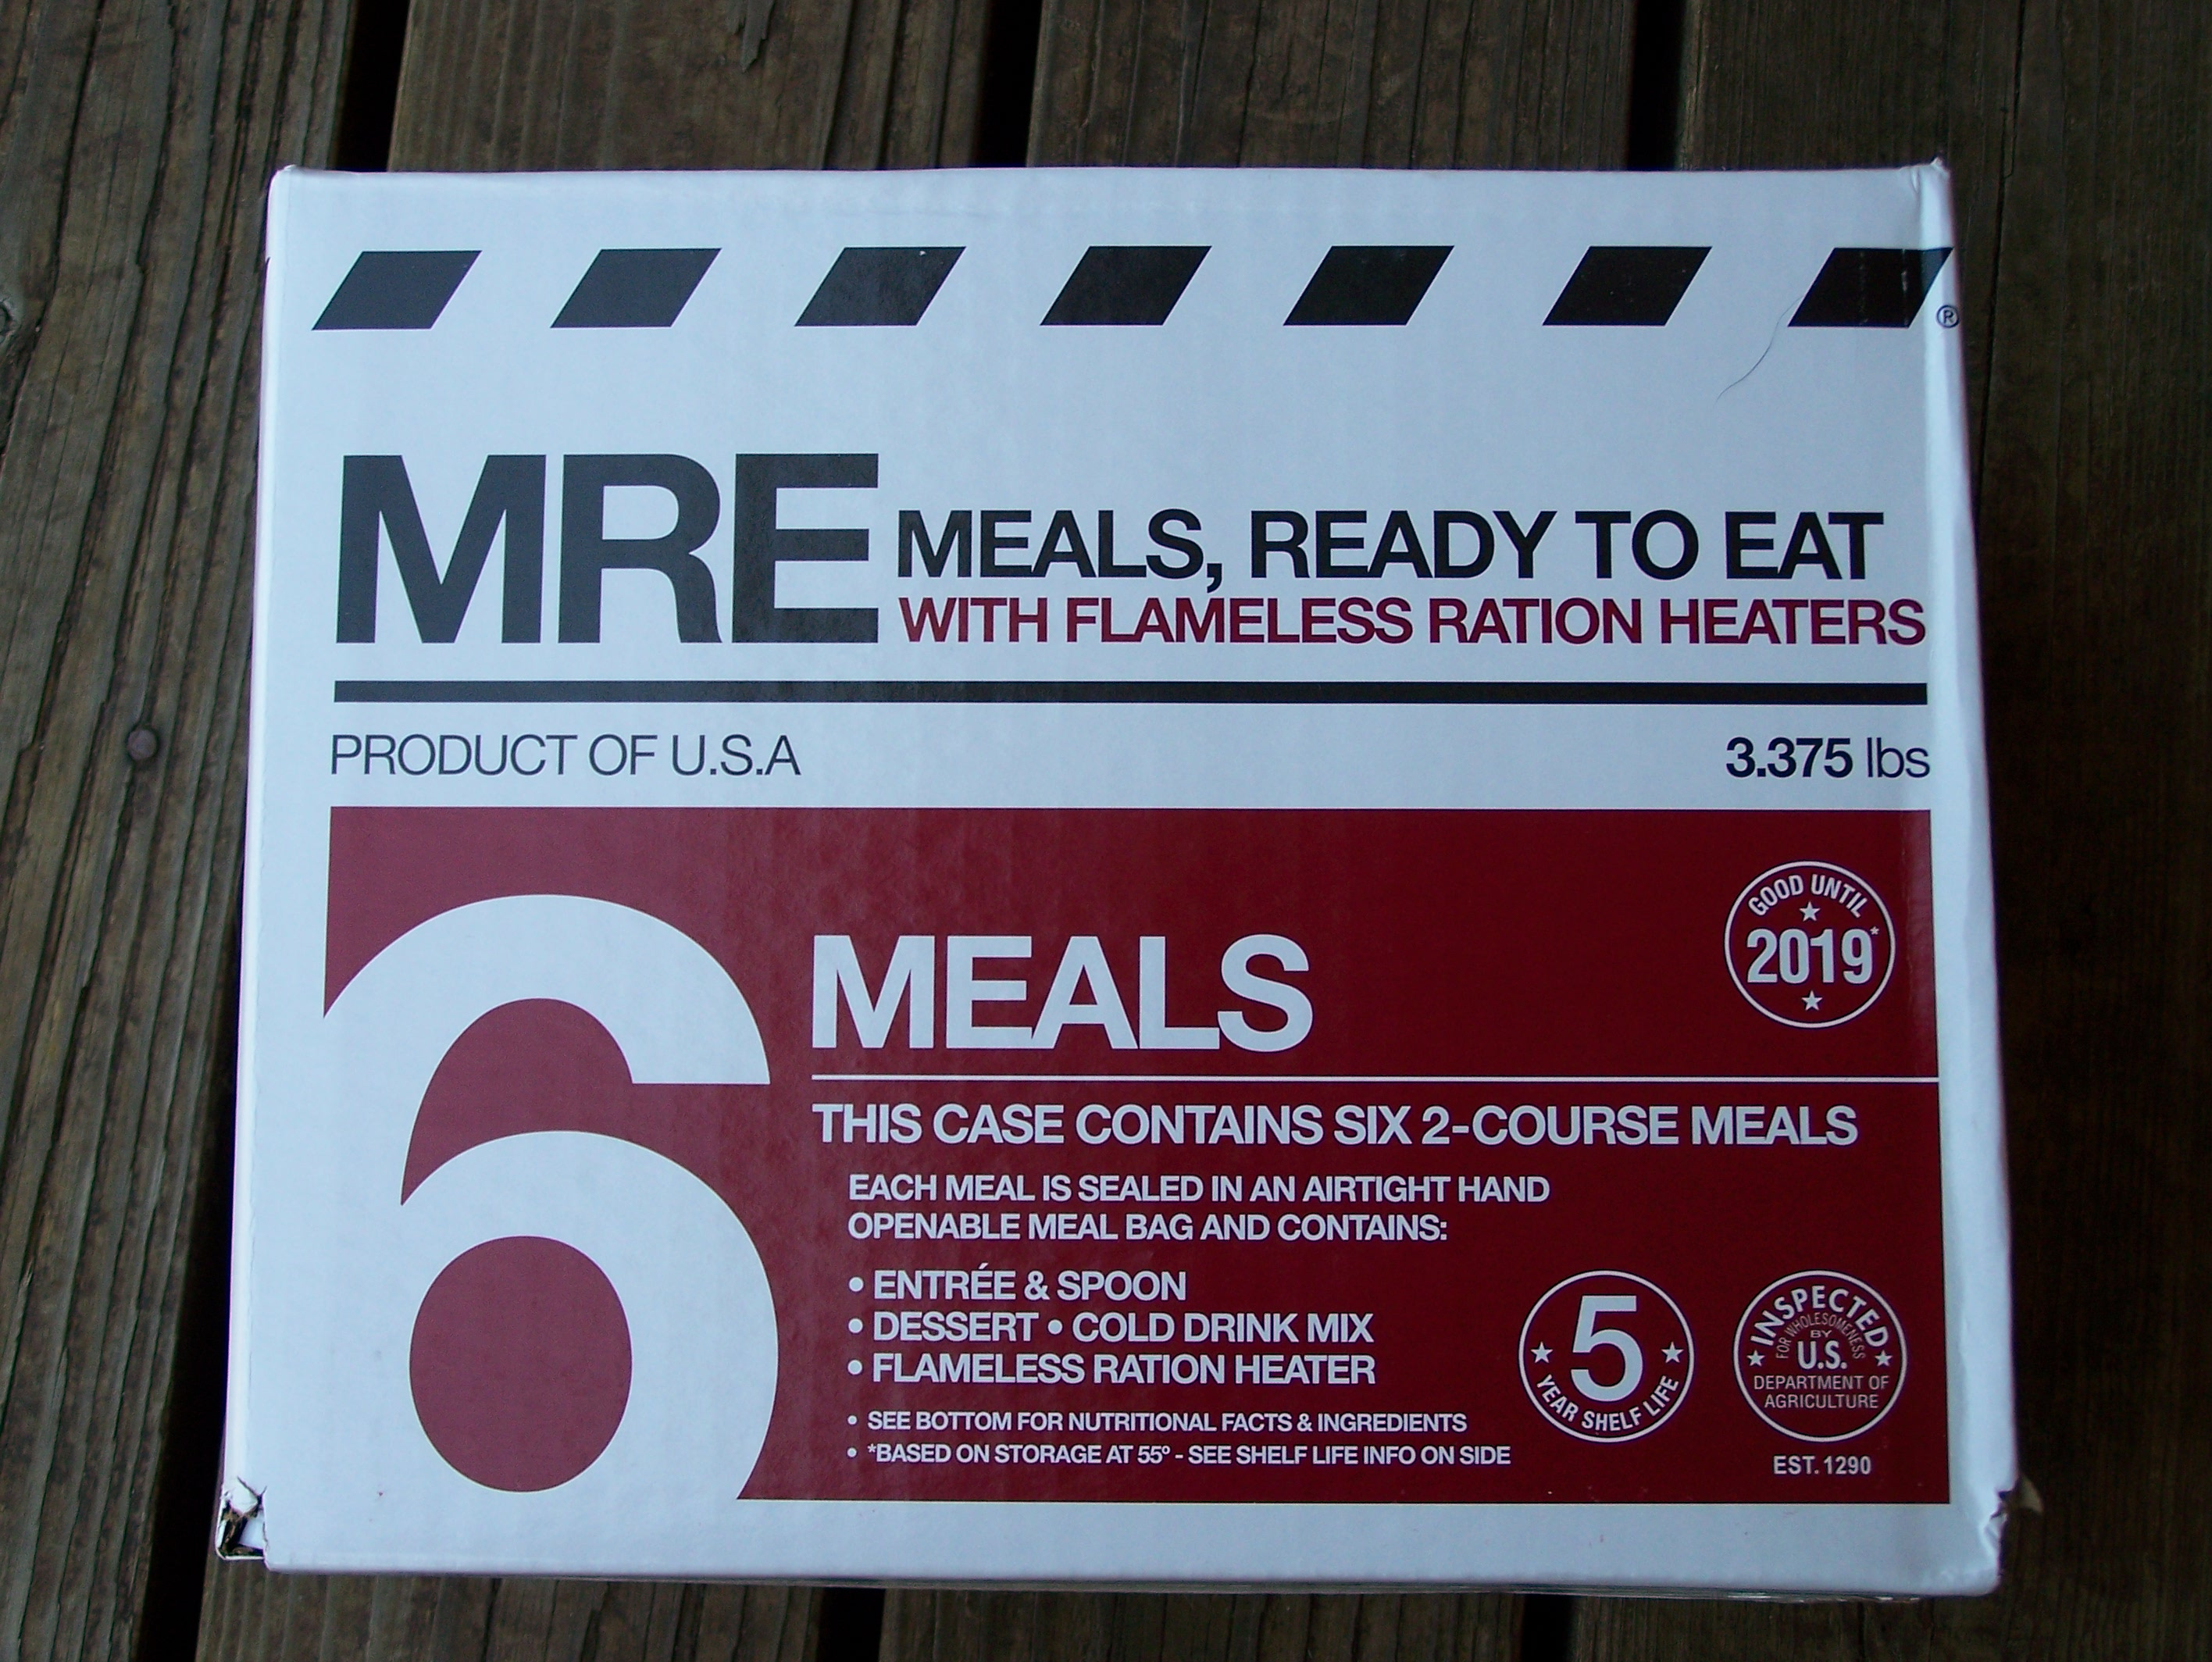 Review: Meal Kit Supply's 2-Course MRE Six-Pack